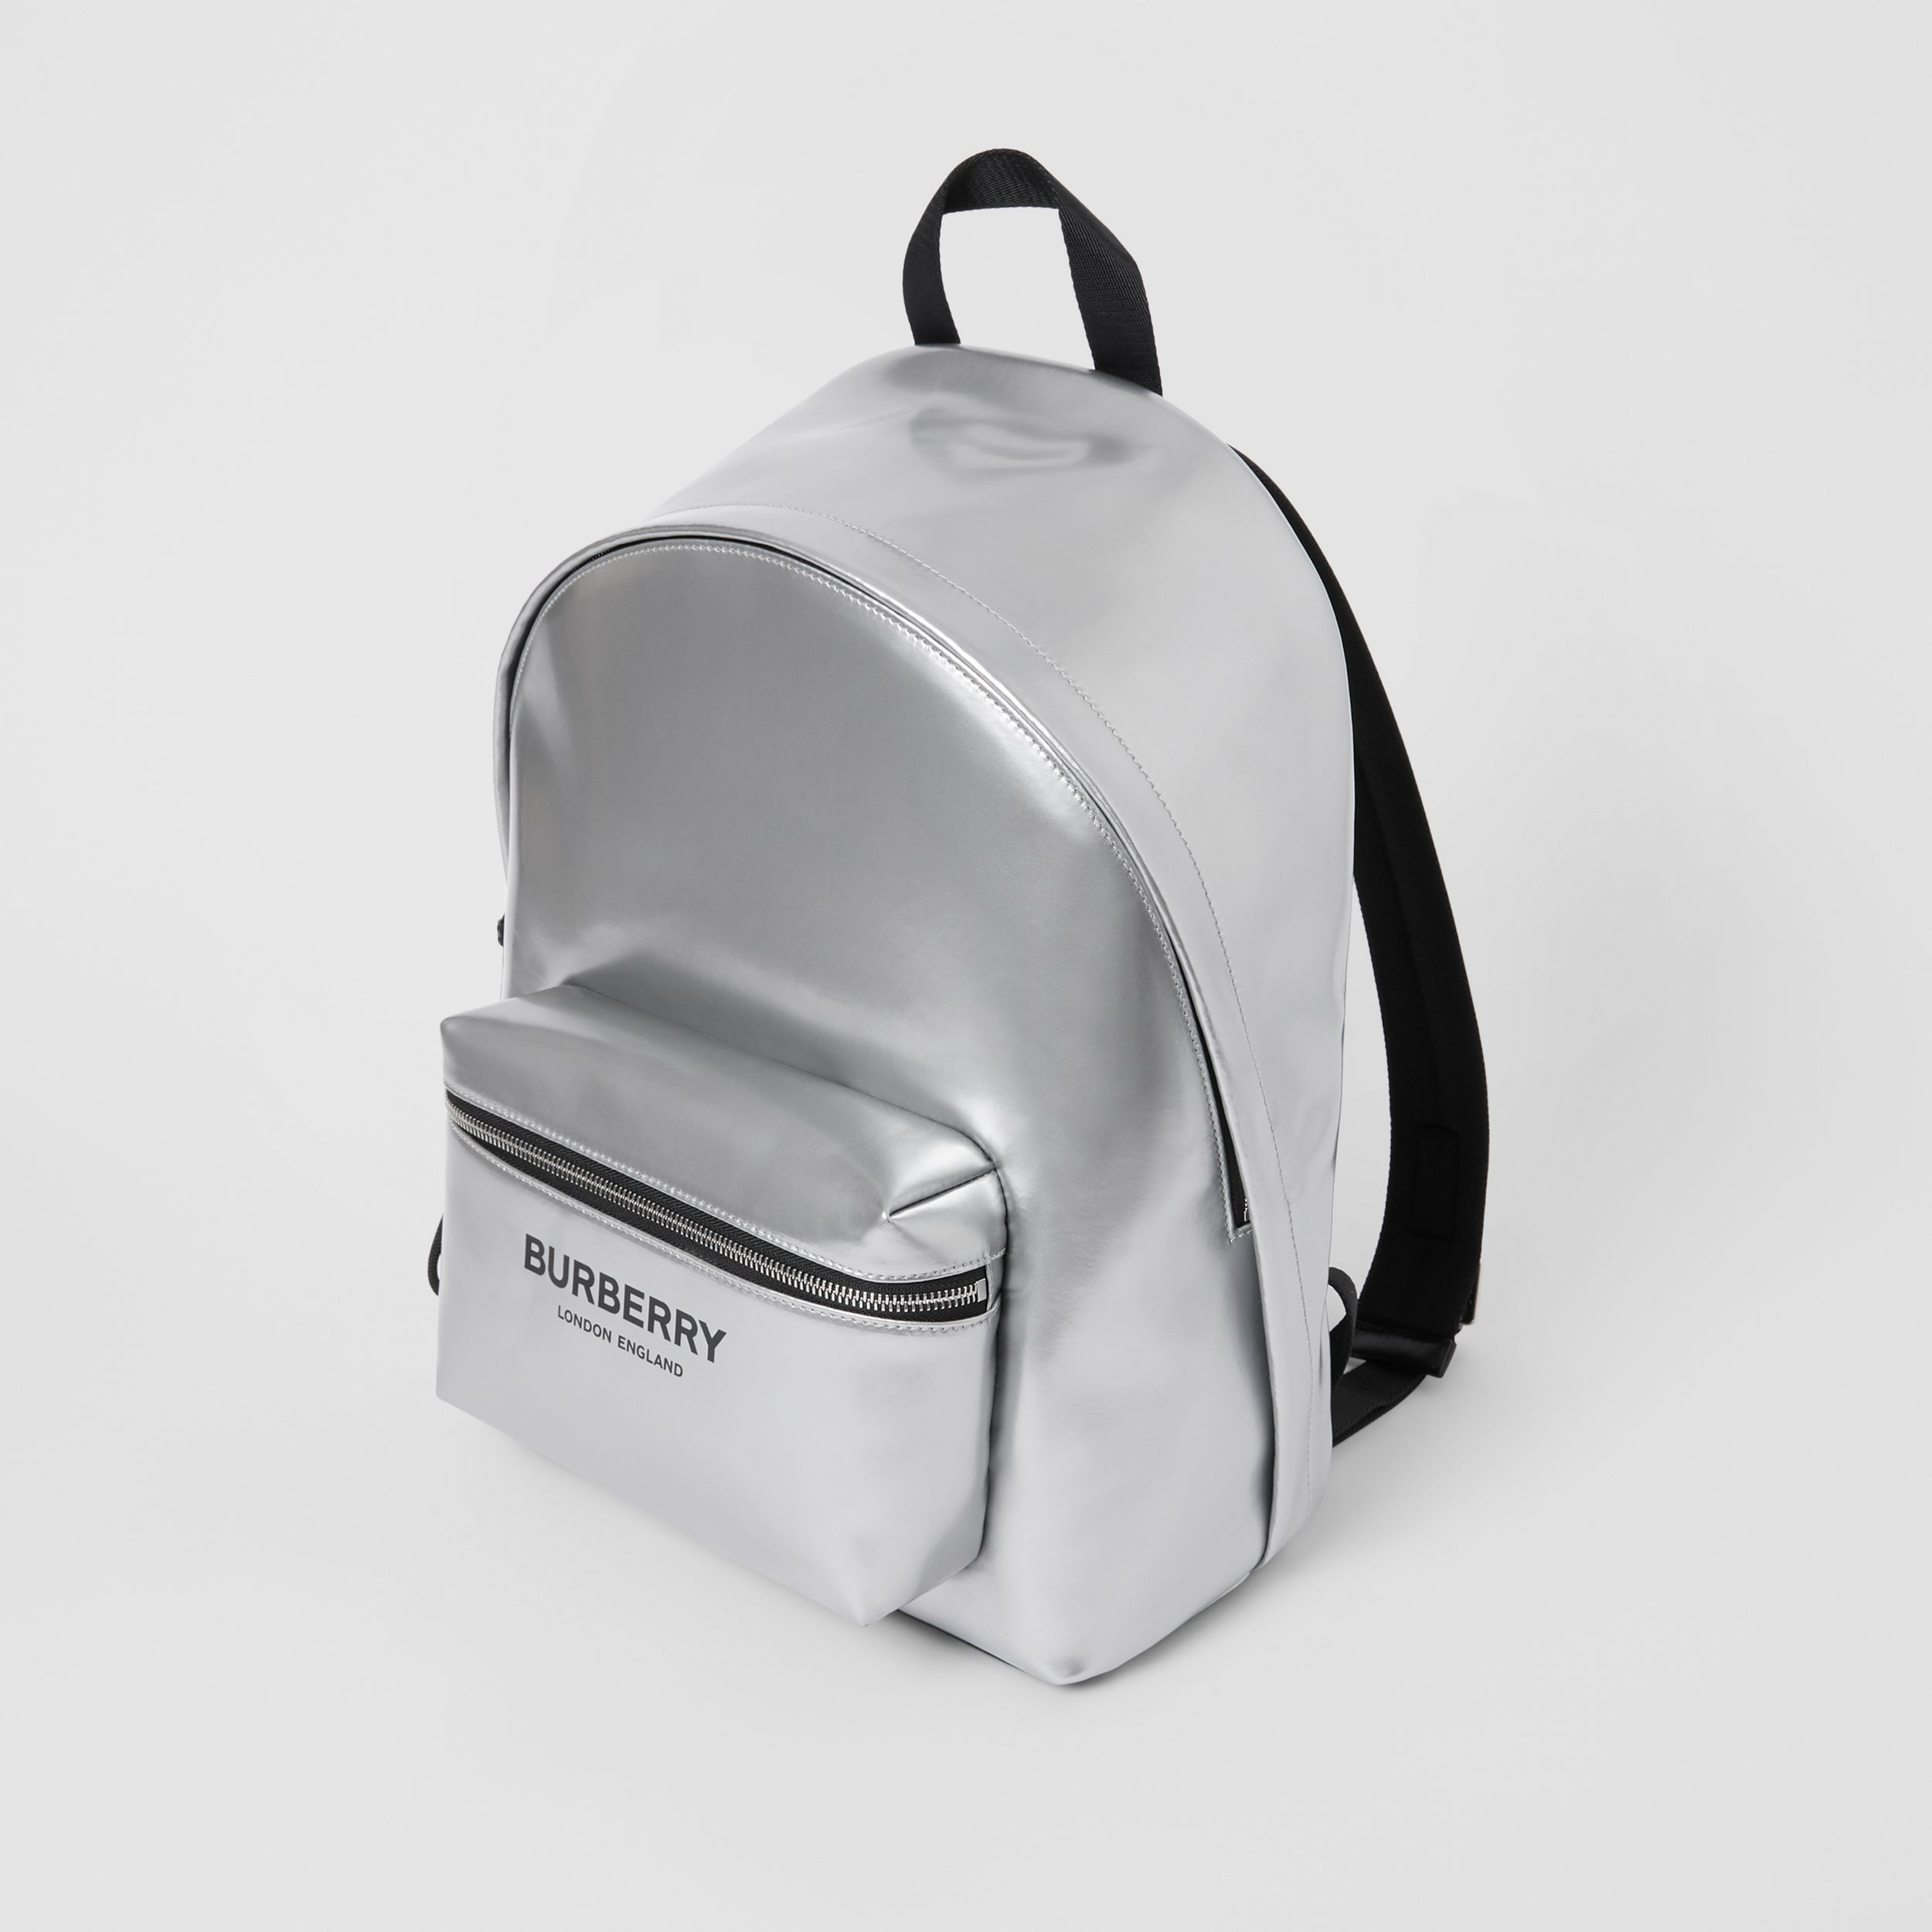 Metallic Coated Canvas Backpack in Silver | Burberry - 4